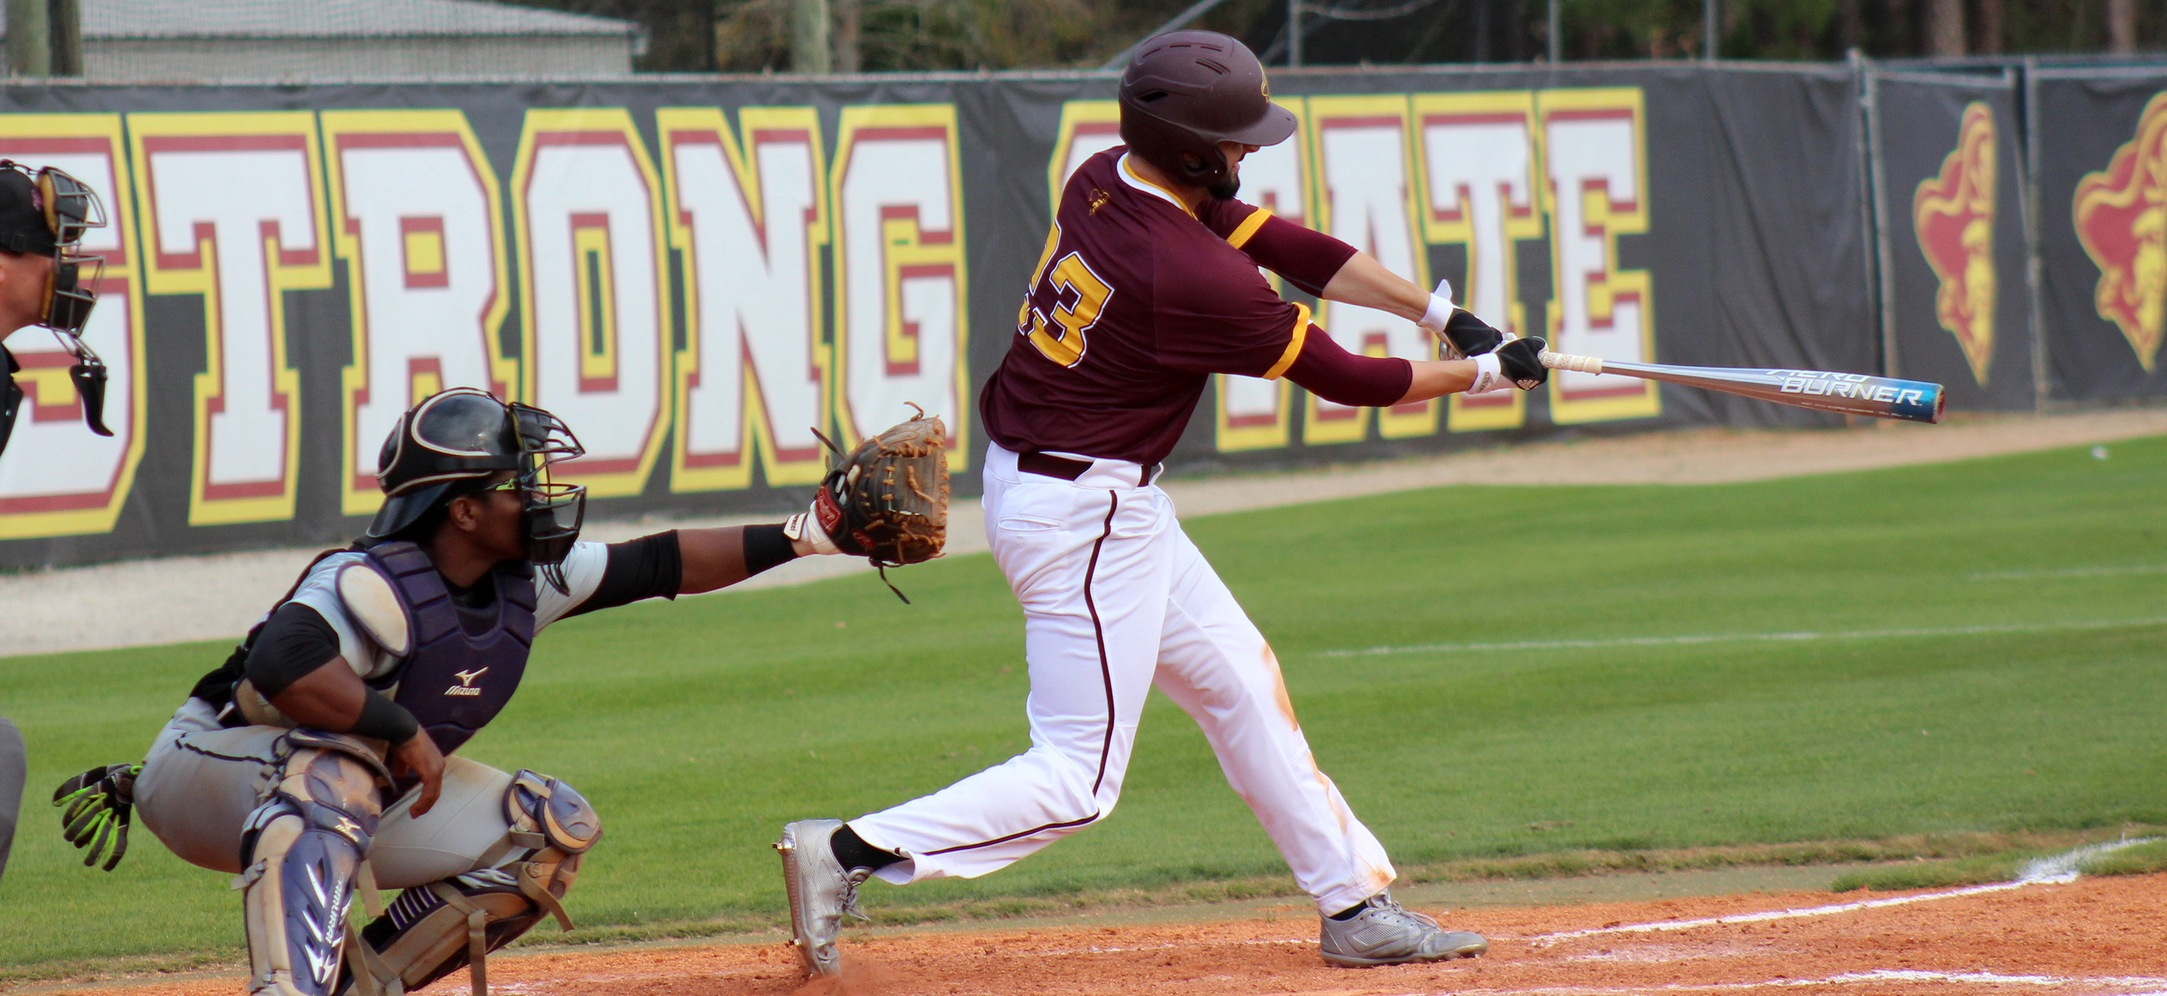 No. 9 USC Aiken Completes Sweep With Extra-Inning 12-9 Win Over Pirates